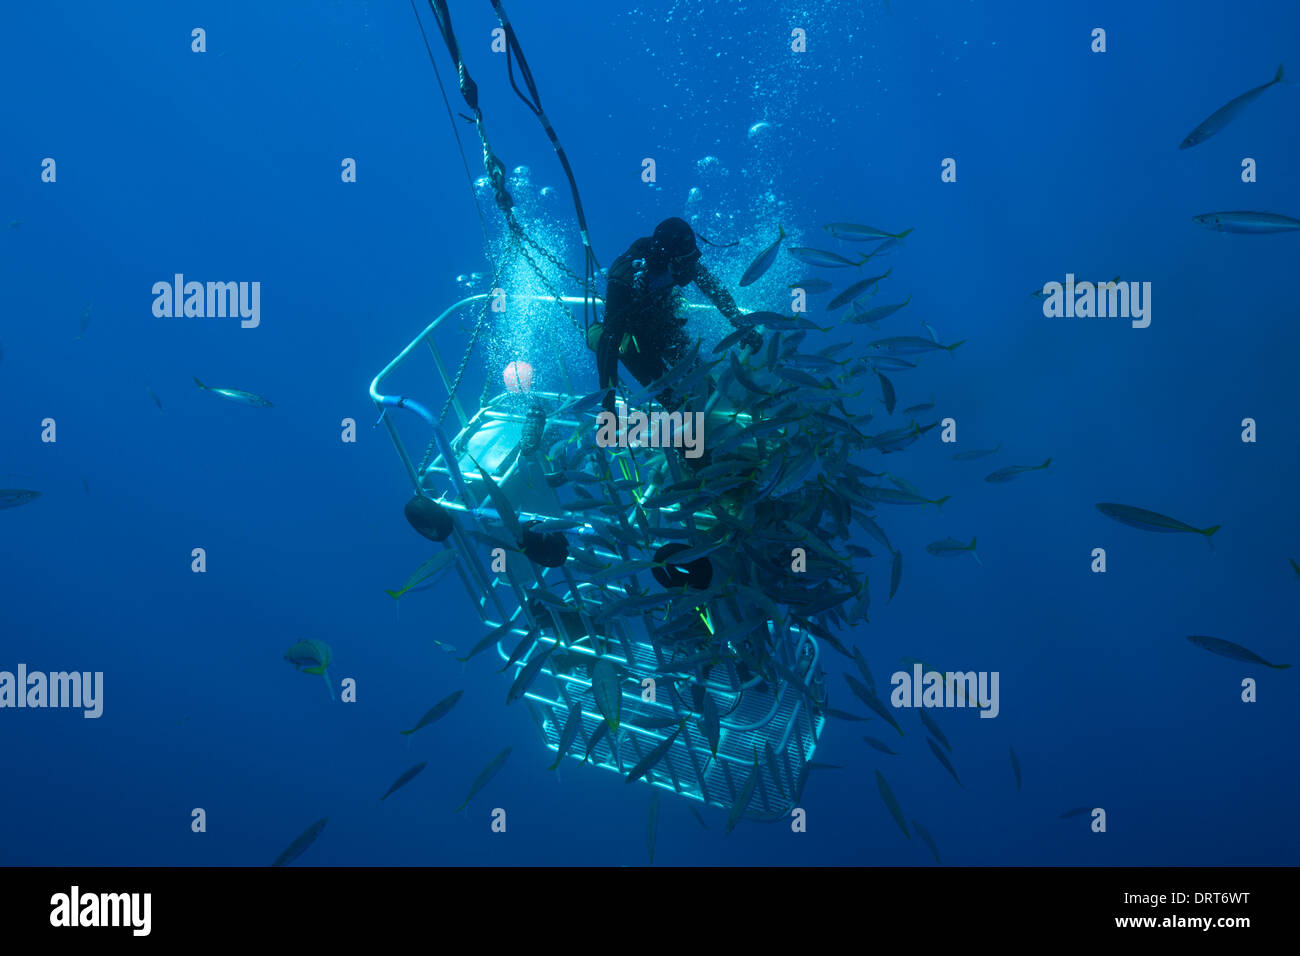 Great White Shark Cage Diving, Guadalupe Island, Mexico Stock Photo ...